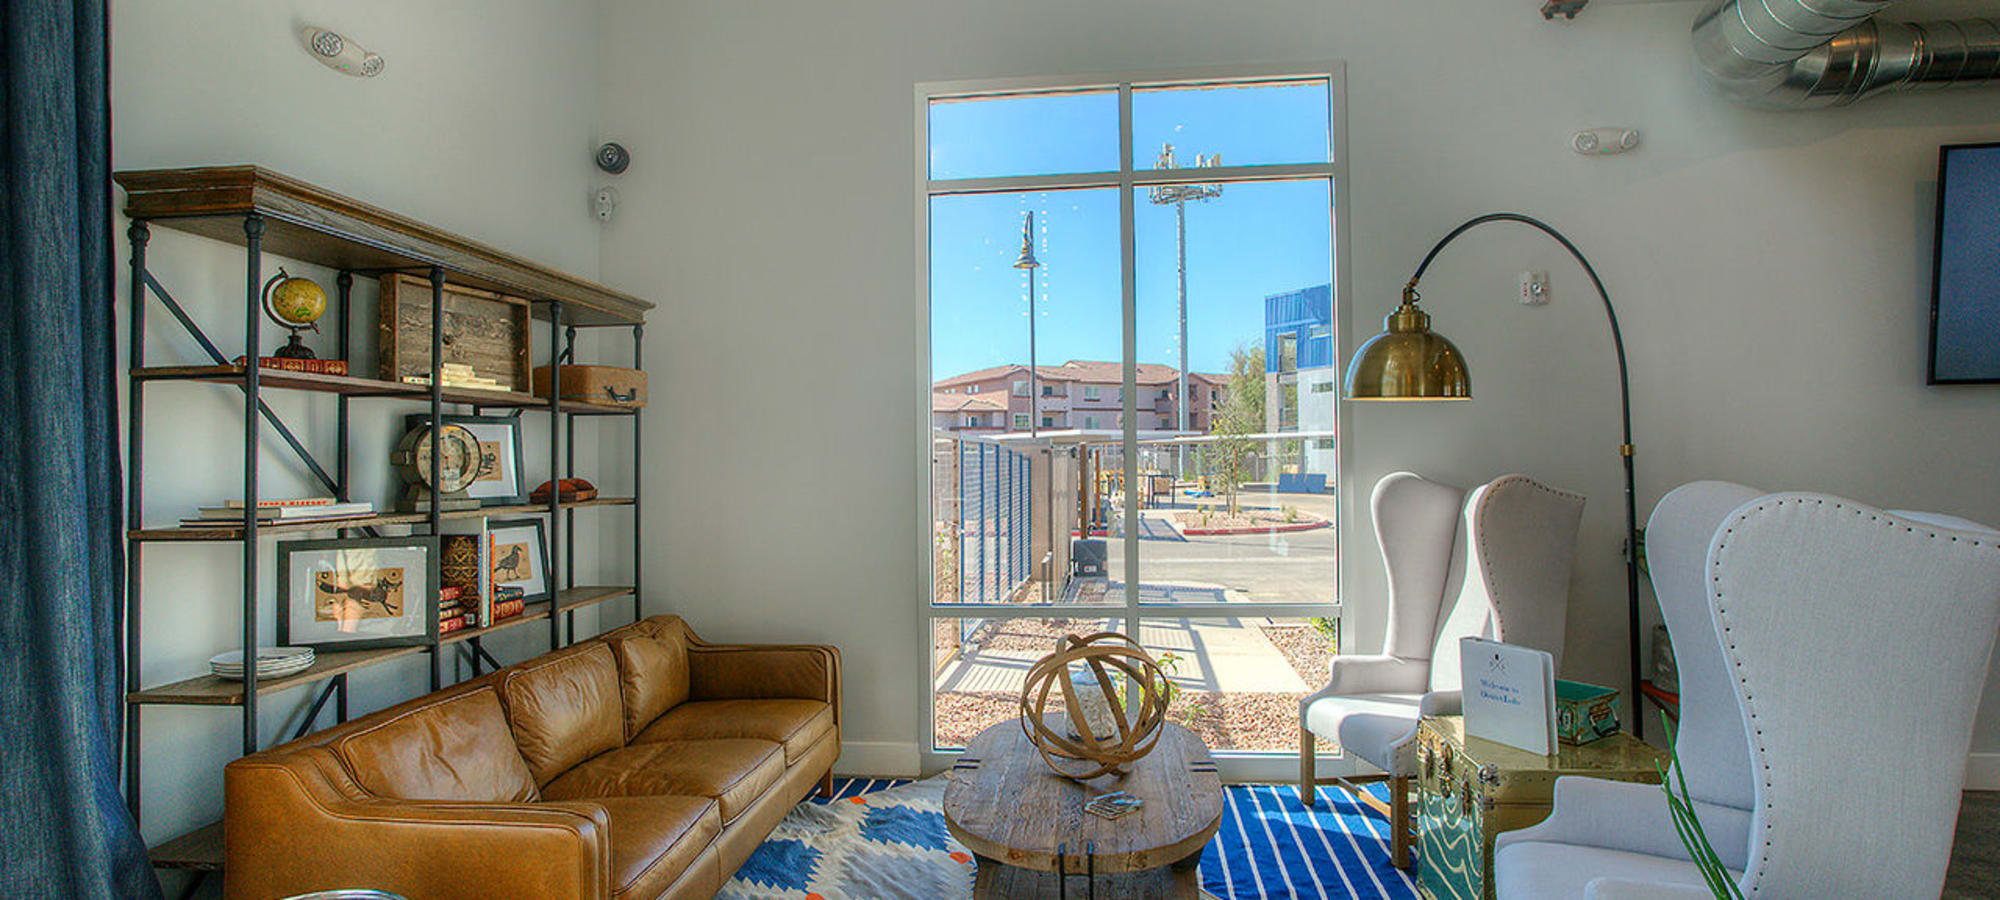 Cozy living area in model home at District Lofts in Gilbert, Arizona